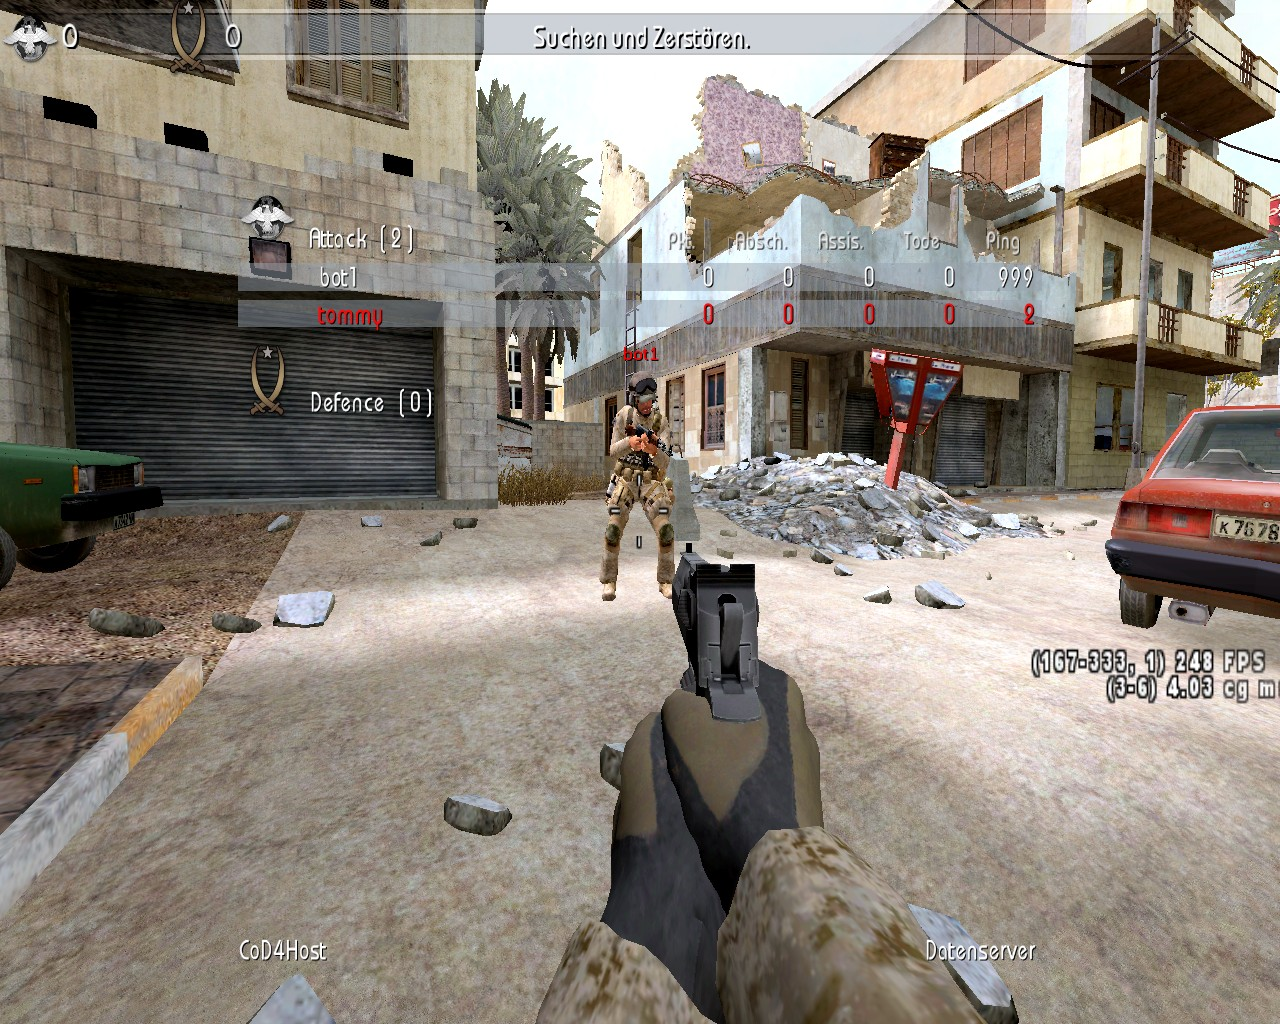 tommys 2k17 CoD4 CFG cod4 config settings download